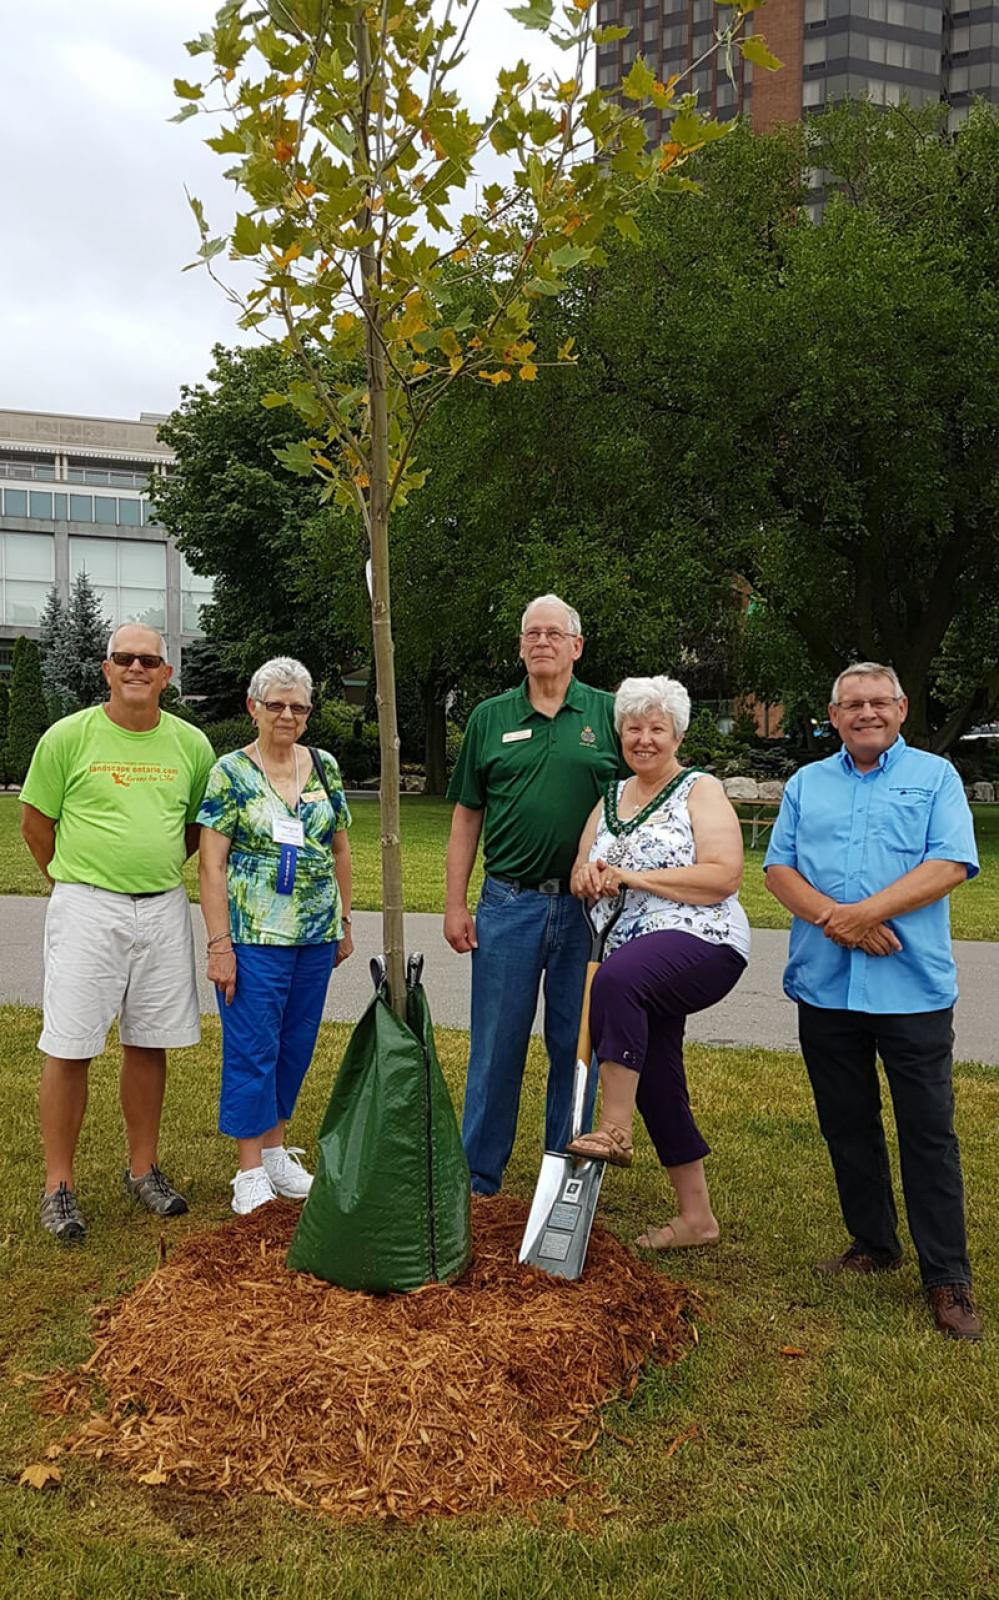 (L to R): Jay Terryberry, president LO Windsor Chapter; Margaret Laman, OHA District 10 Rep; Charles Freeman, OHA Vice President; Katherine Smyth, OHA President; at a tree planting to commemorate the 113th OHA convention.